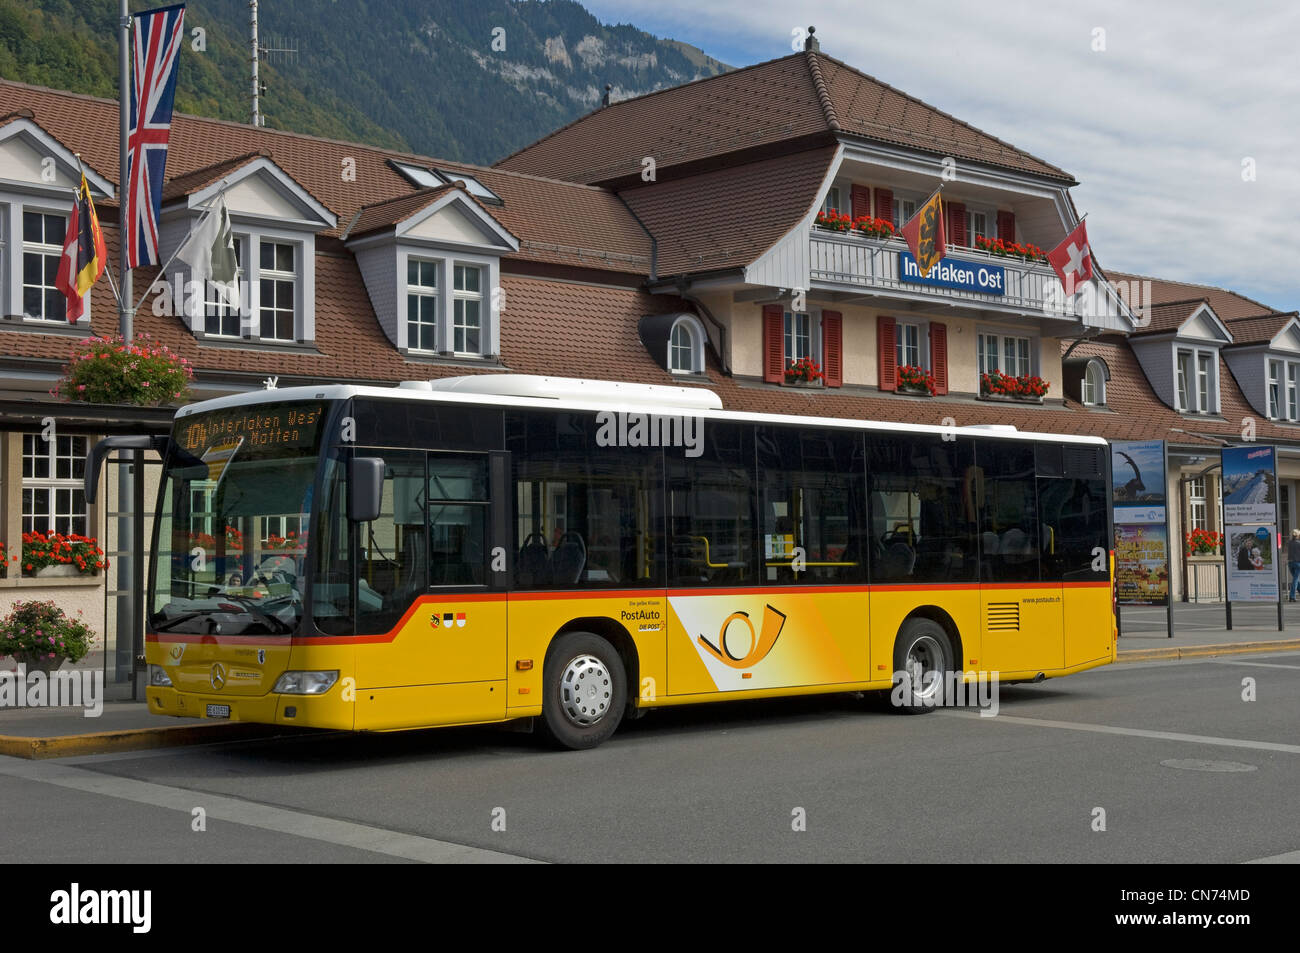 Post bus outside the Ost station in Interlaken in the Canton of Bern in Switzerland - Stock Image